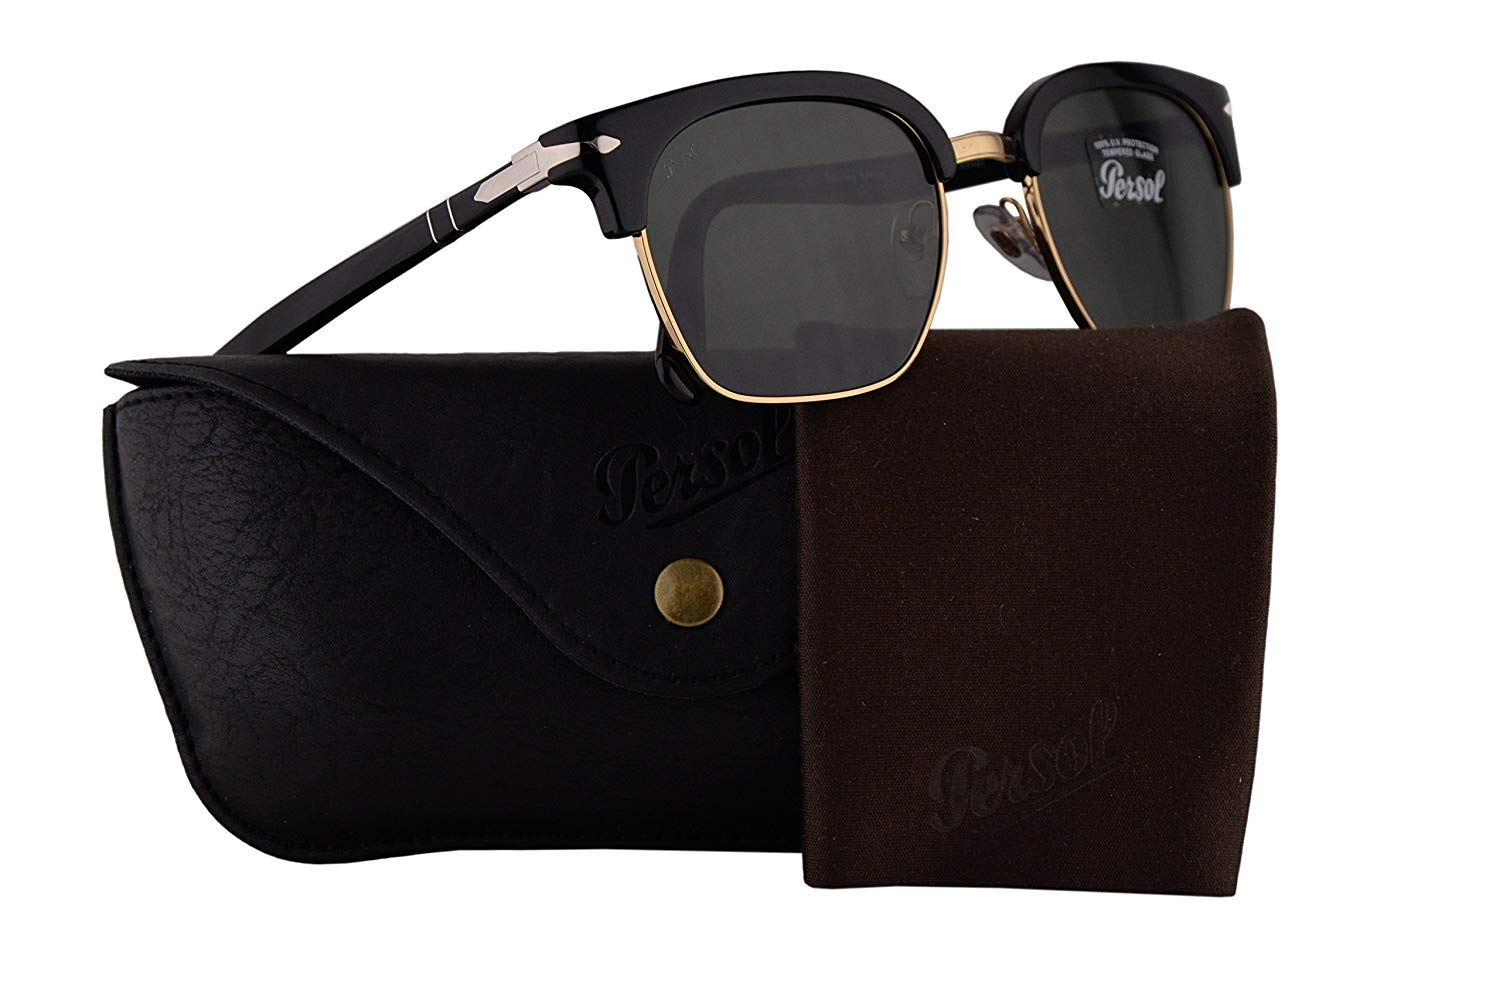 994800e1f3 Get Quotations · Persol PO3199S Tailoring Edition Sunglasses Black w Green  Lens 50mm 9531 PO 3199-S